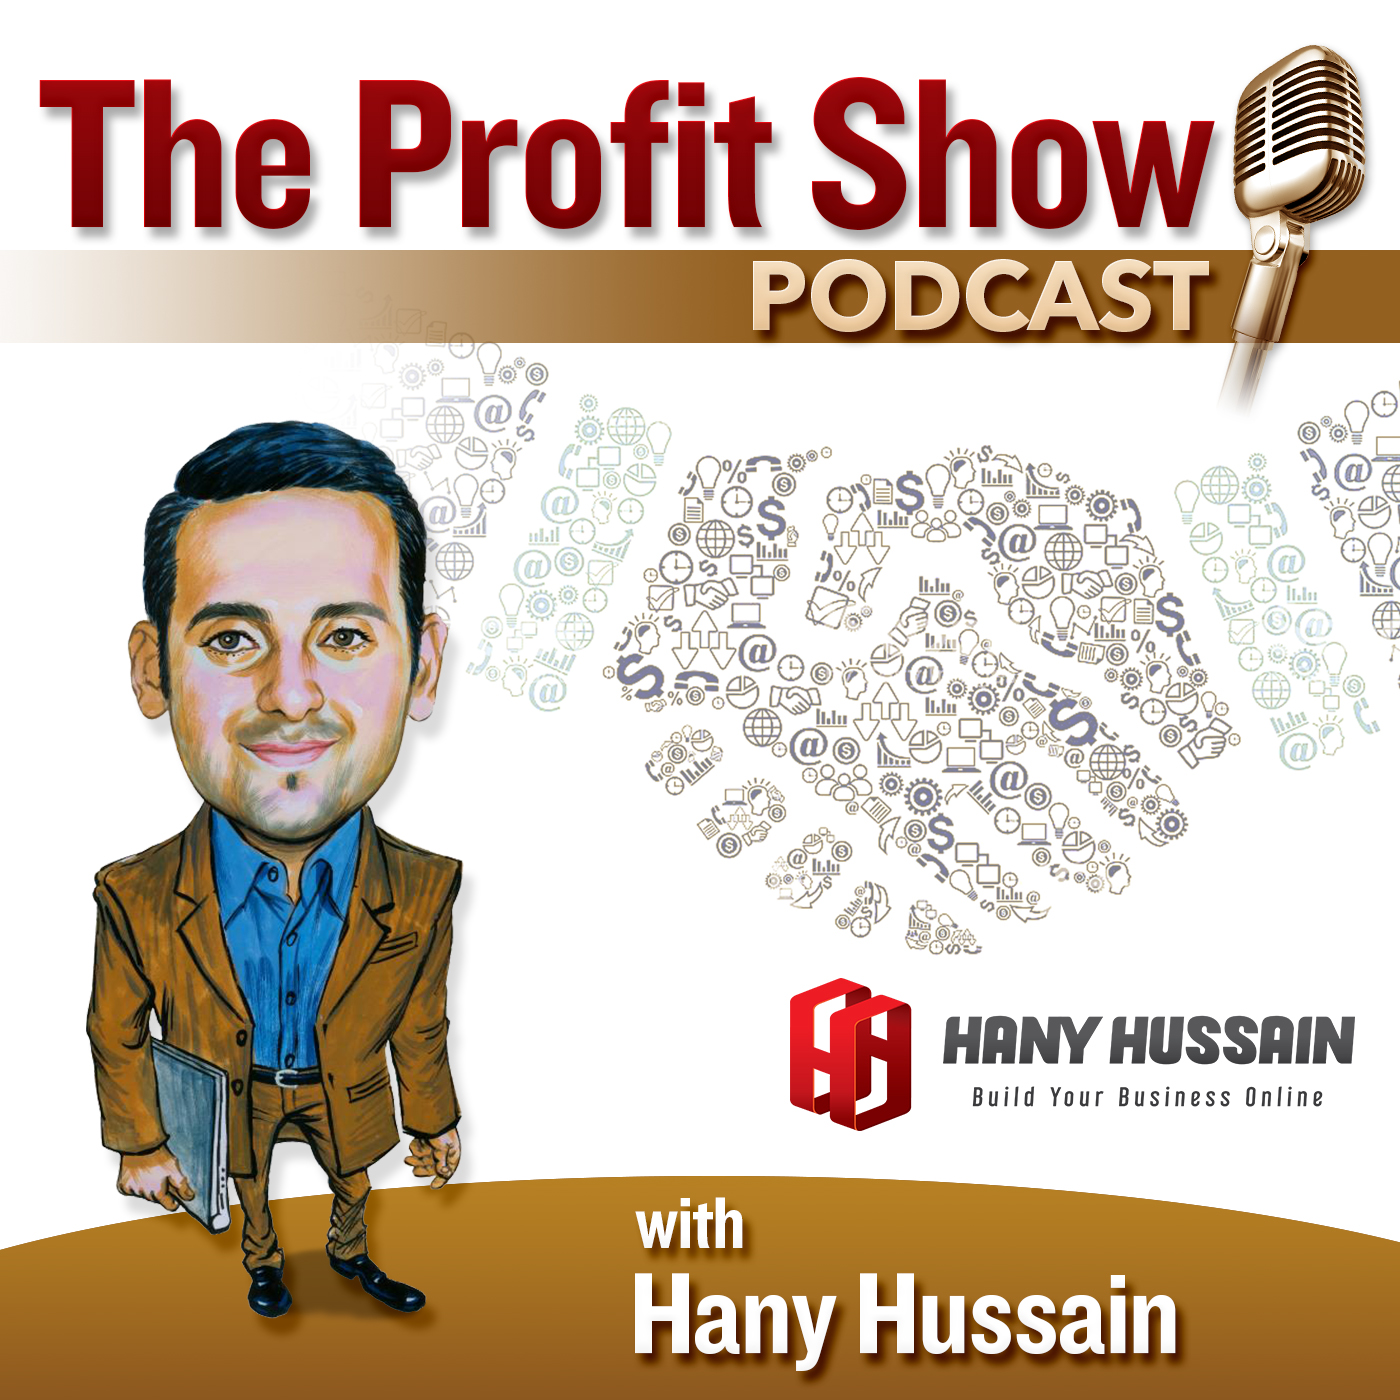 The Profit Show With Hany Hussain show art